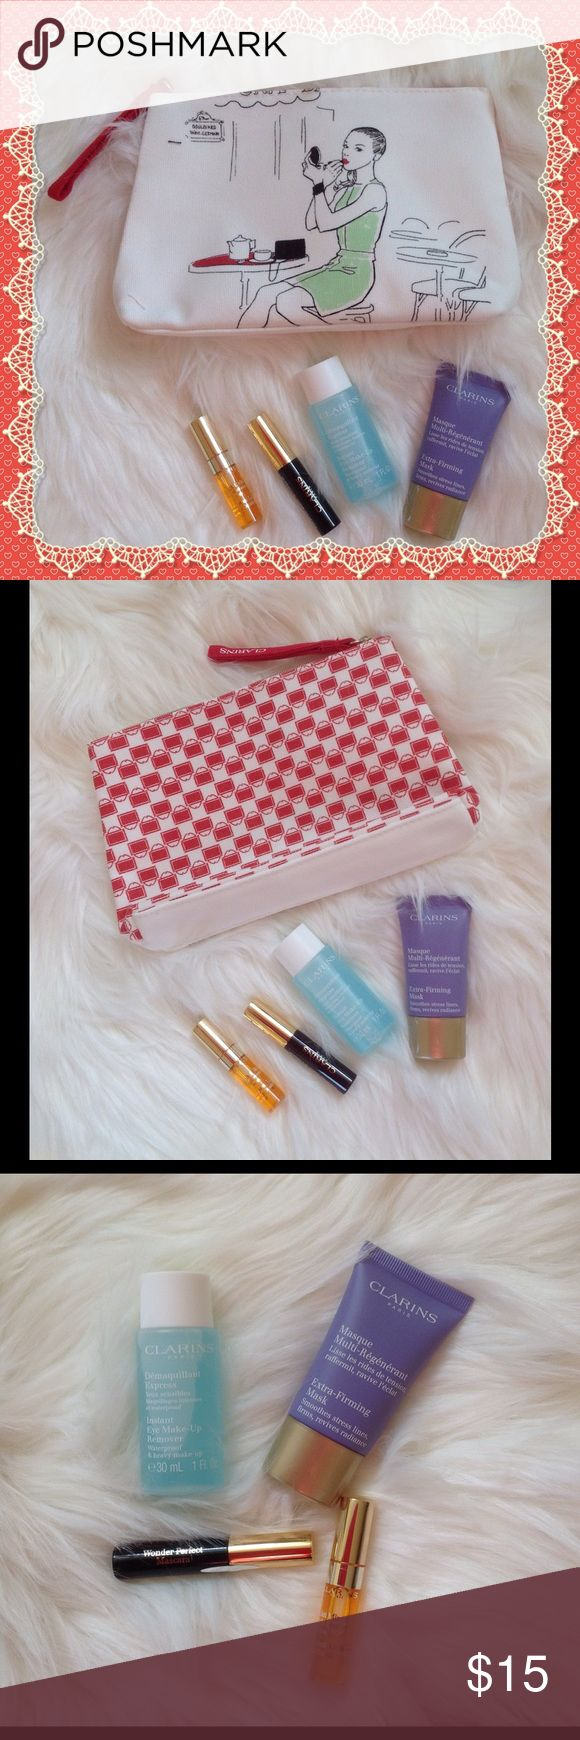 Clarins Beauty Bundle, NWOT Clarins Beauty Bundle includes Wonder Perfect Mascara (sample size), Extra Firming Mask (0.5 oz.), instant Make Up Remover ( 1 oz); Instant Lip Comfort Oil (sample size) plus a super cute Cosmetic Bag. Clarins Makeup